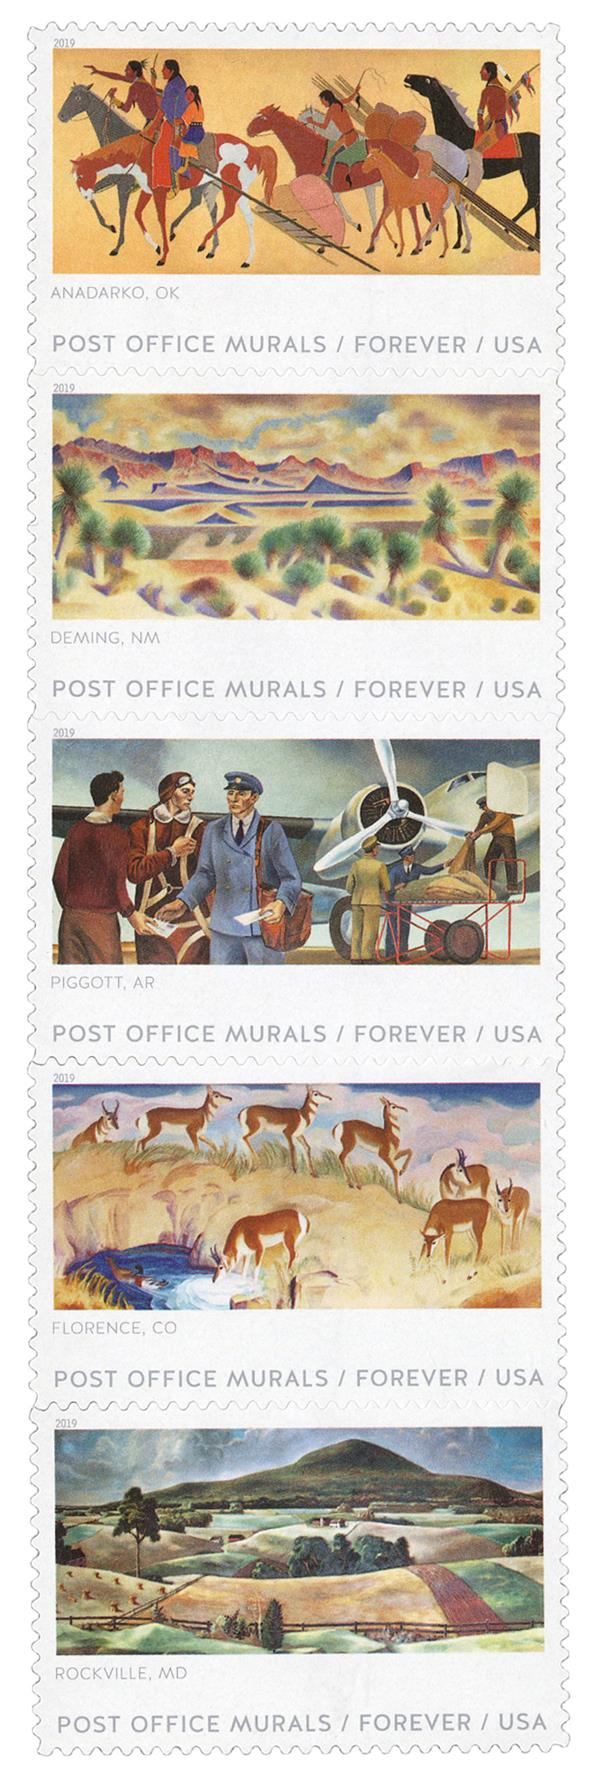 2019 First-Class Forever Stamp - Post Office Murals